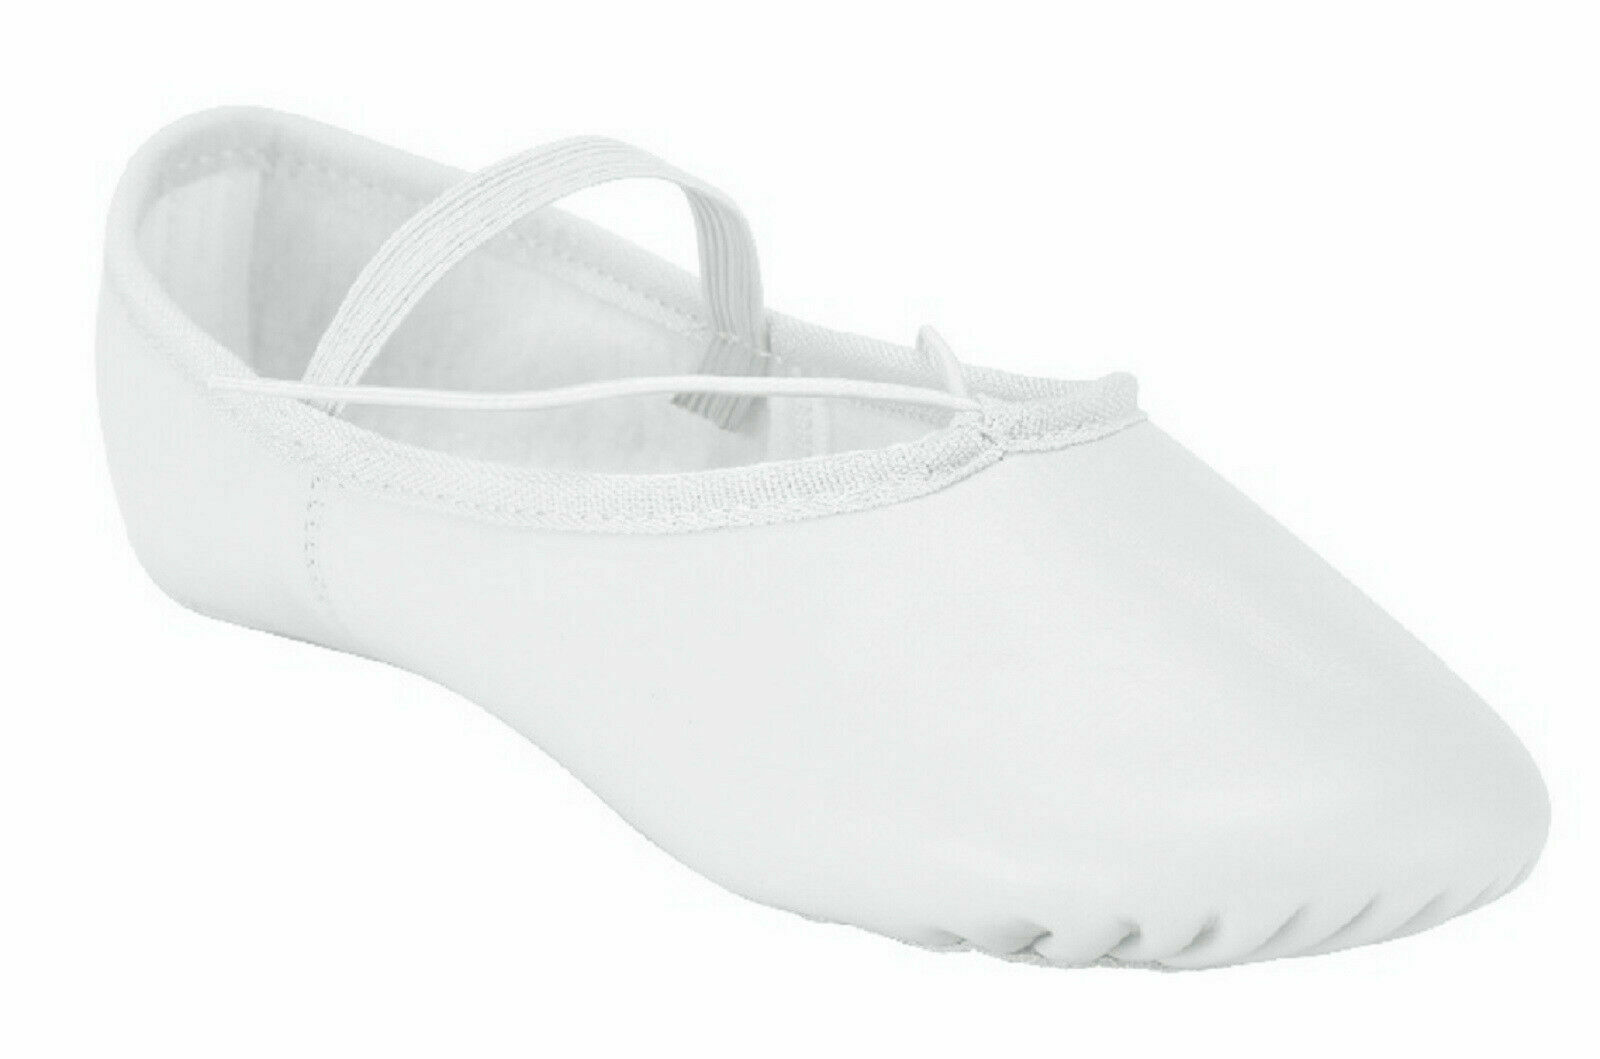 Leather Ballet Shoes Full Sole with Attached Elastics White